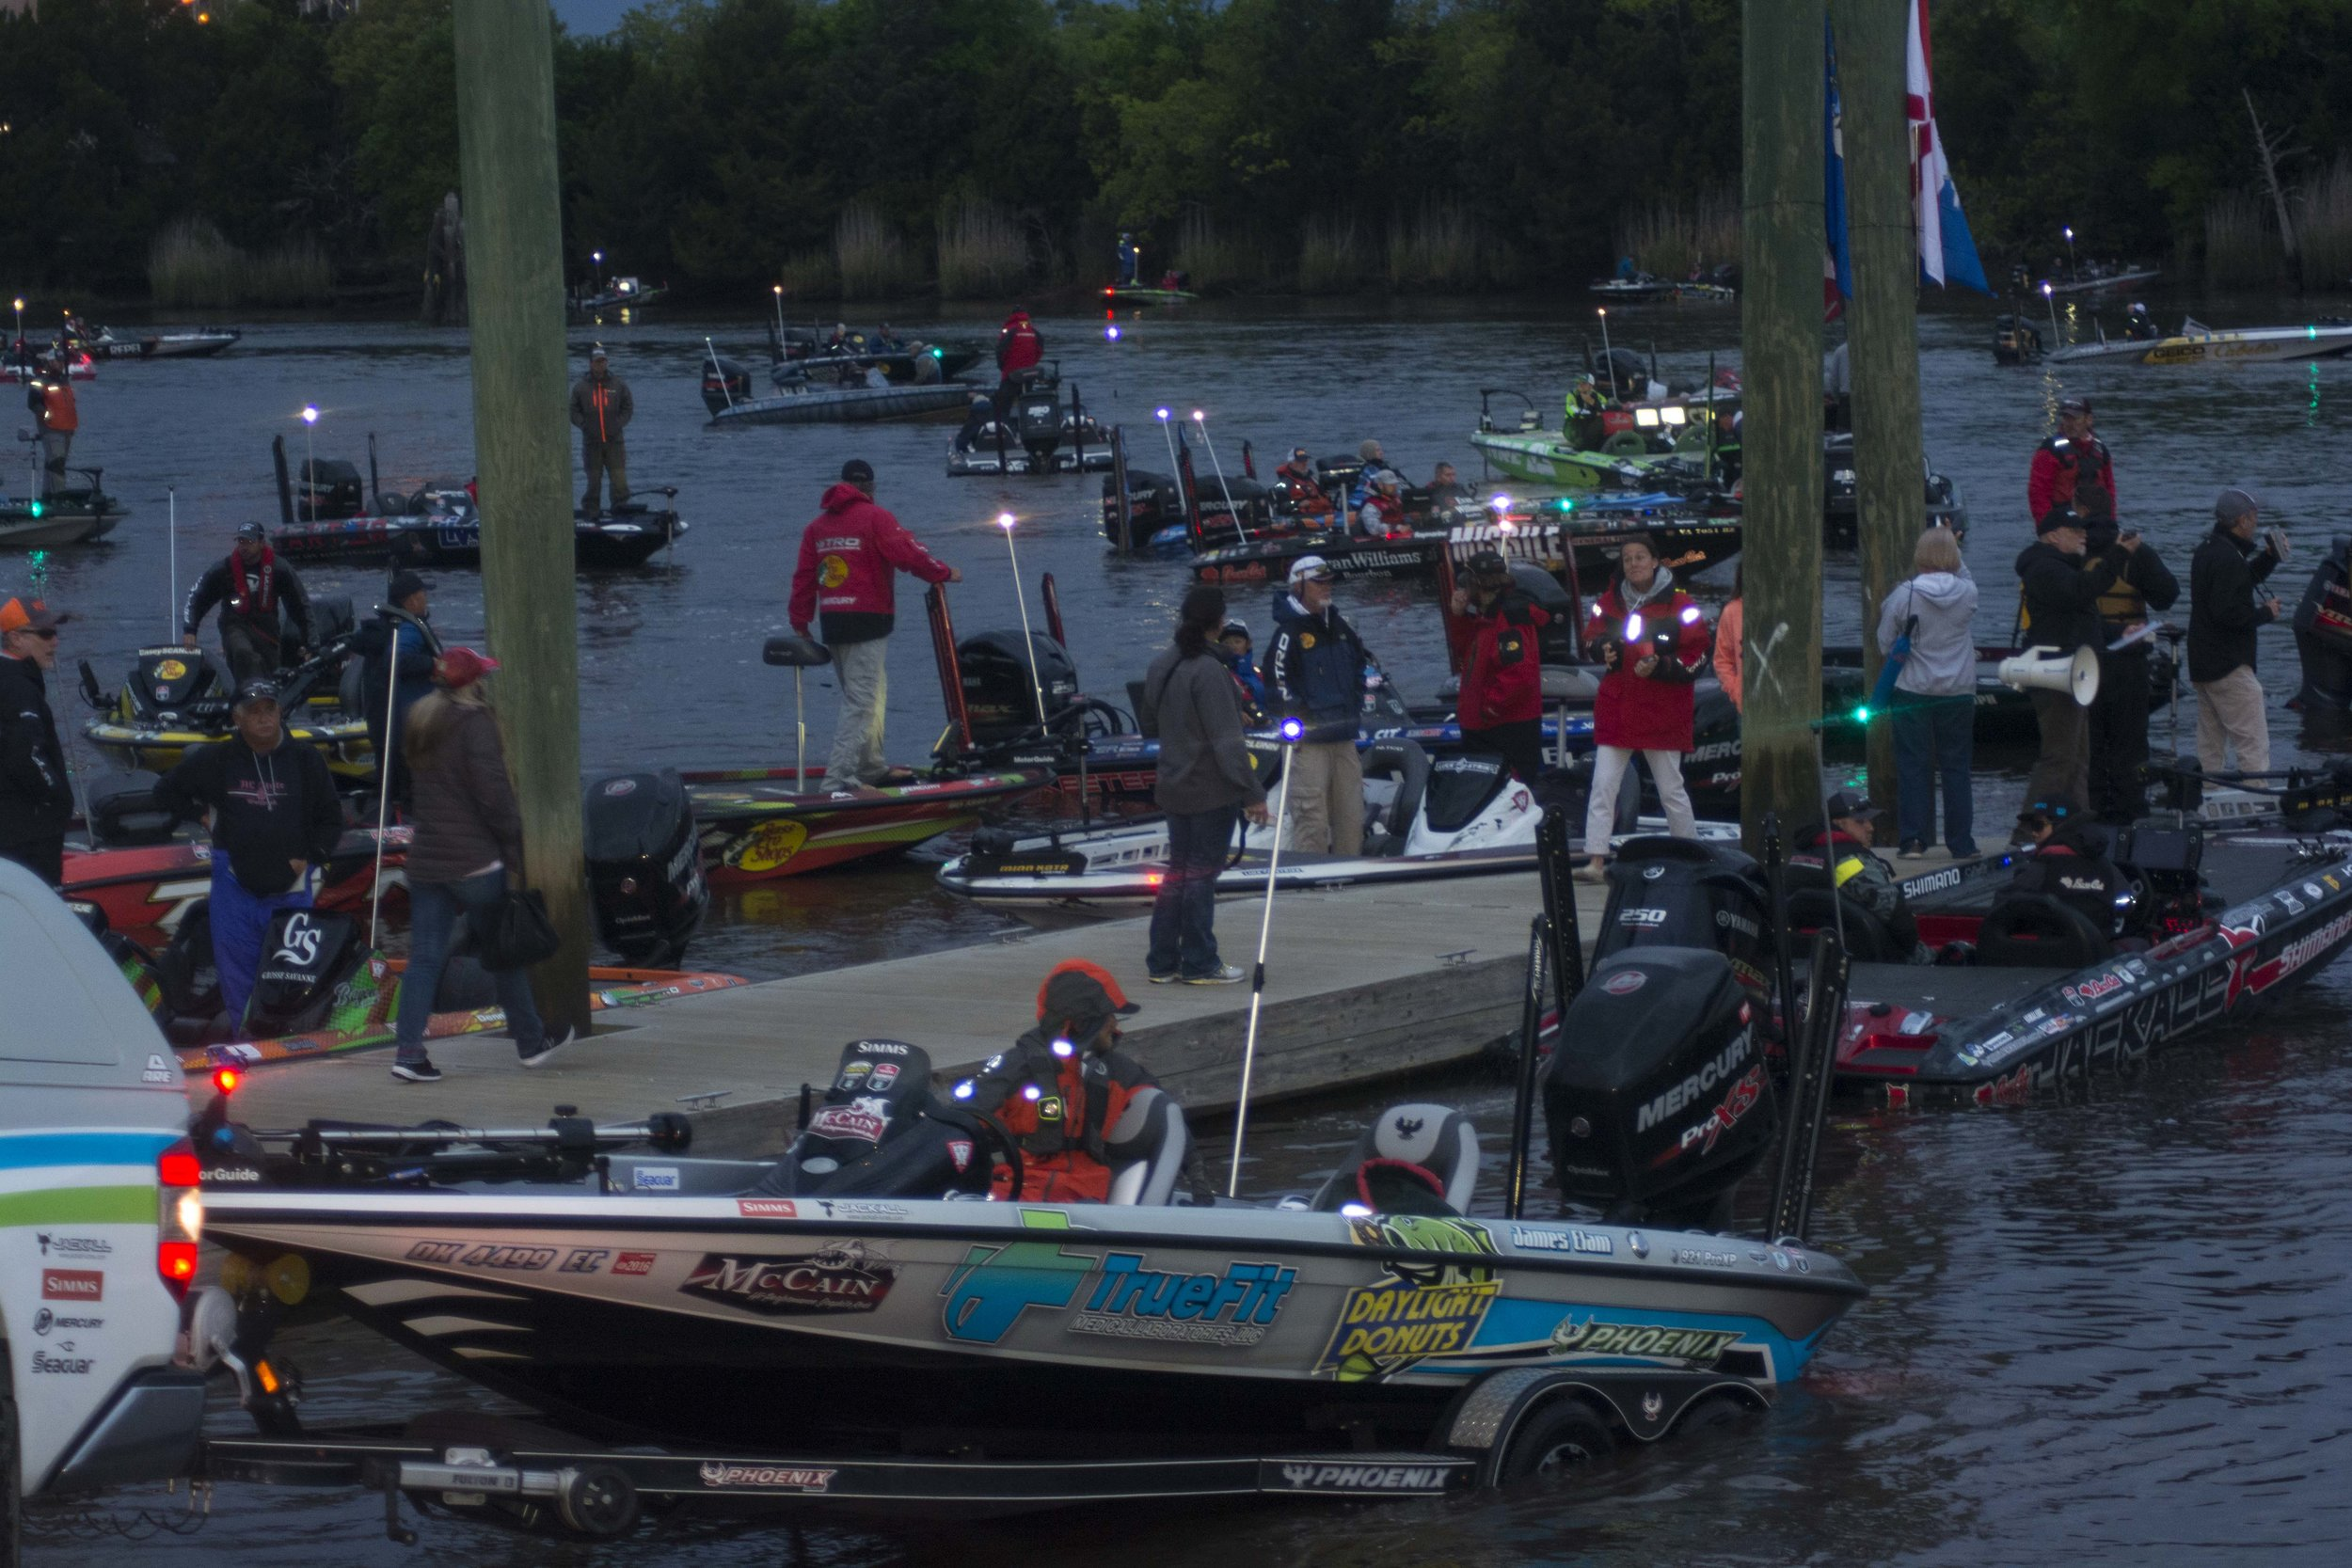 The scene at the early-morning takeoff for a big-time professional bass fishing tournament can resemble controlled chaos, but it's all designed to get the competitors on the water in an organized way and build excitement for the spectators -- part rock concert, part photo-op,  and all fun! [SCDNR photo by David Lucas]